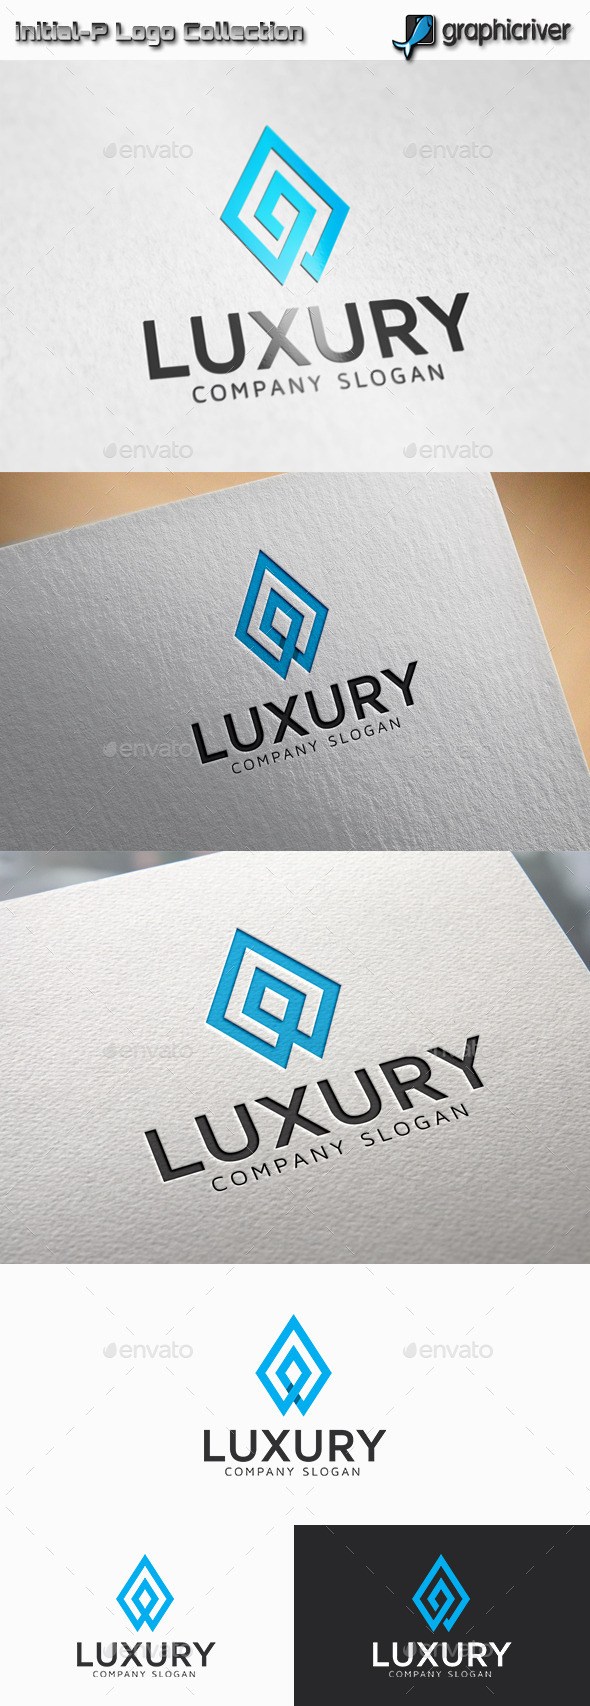 GraphicRiver Luxury logo 11775059